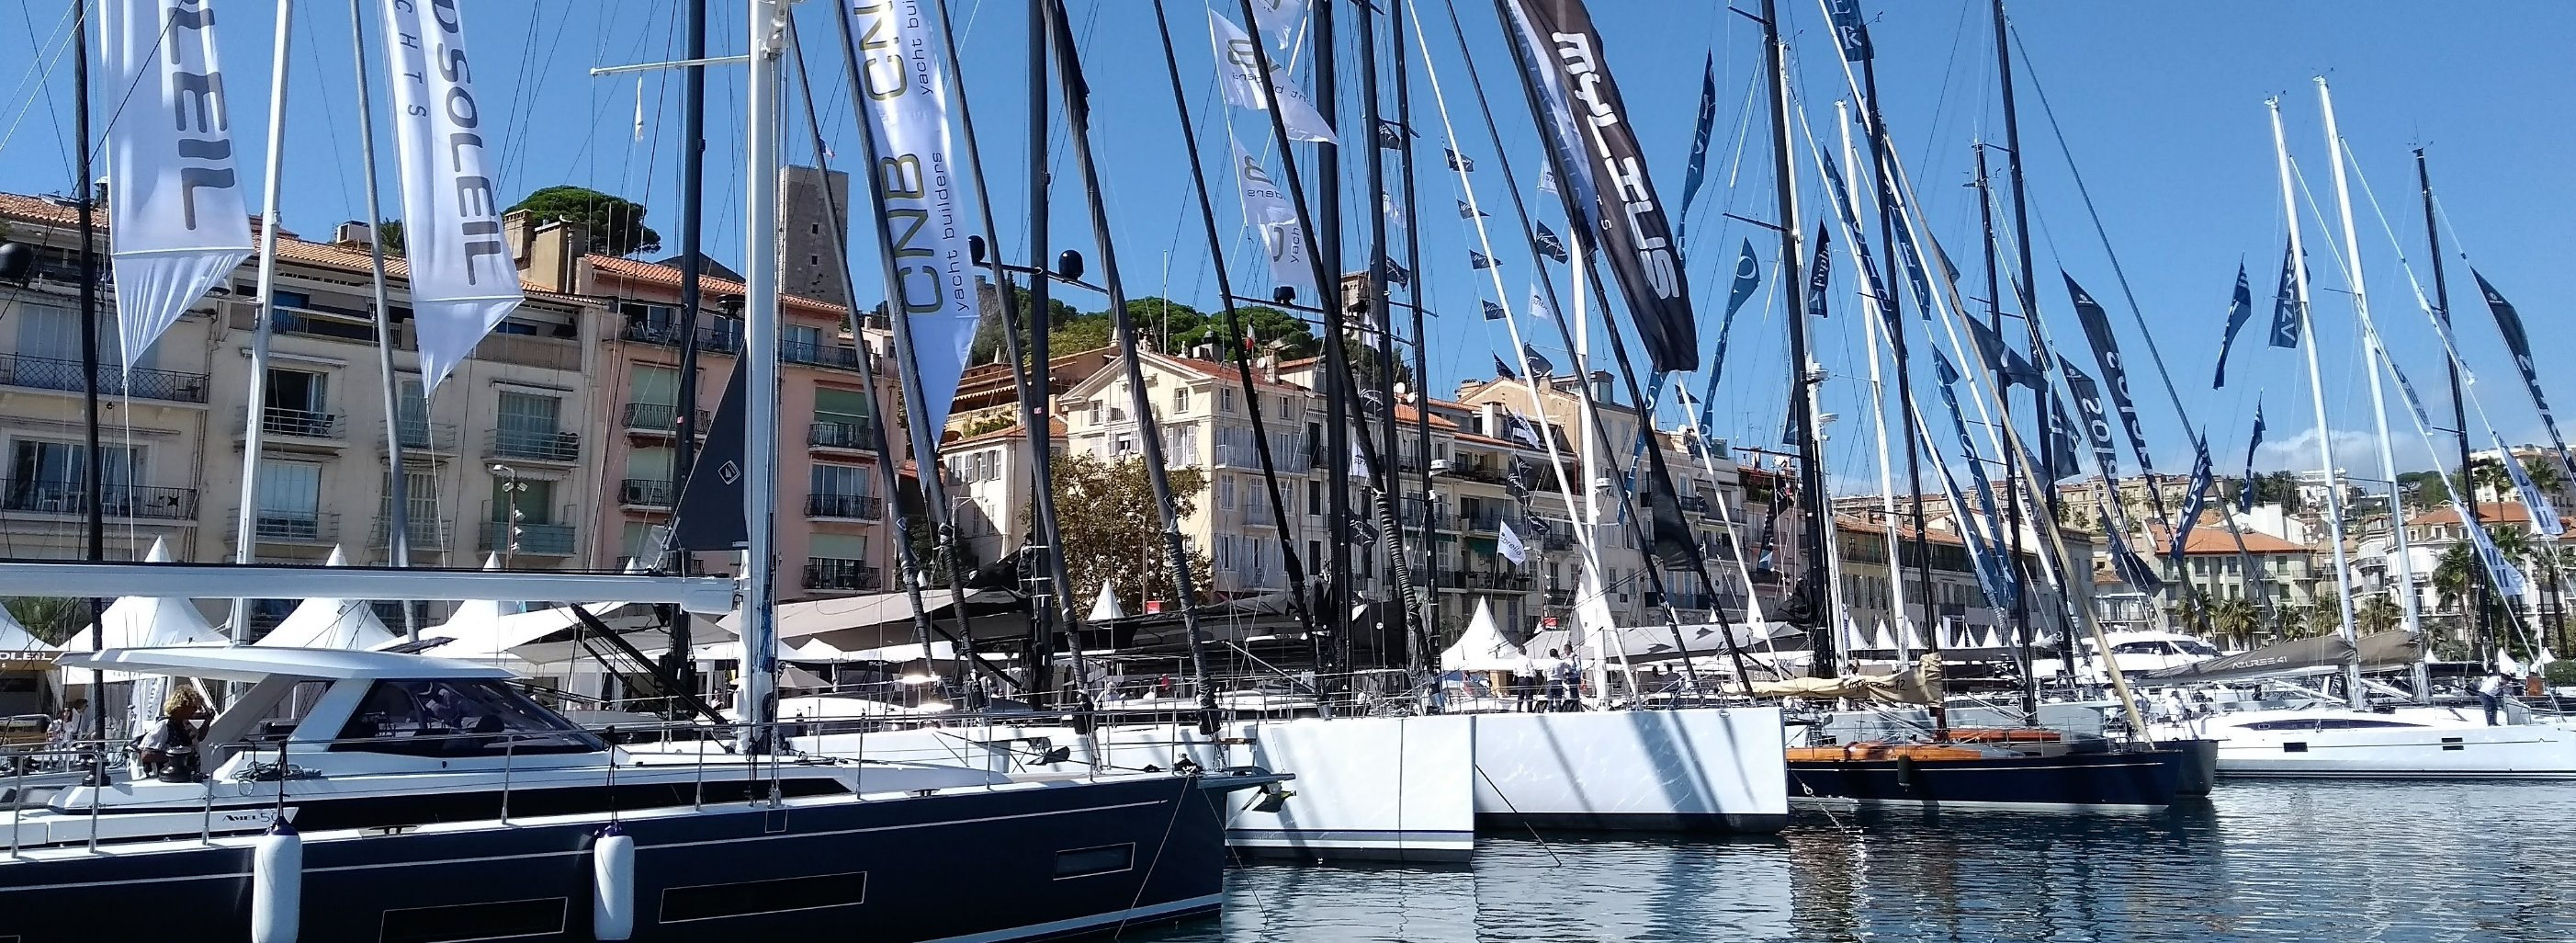 Cannes-Yachting-Festival-SLIDE